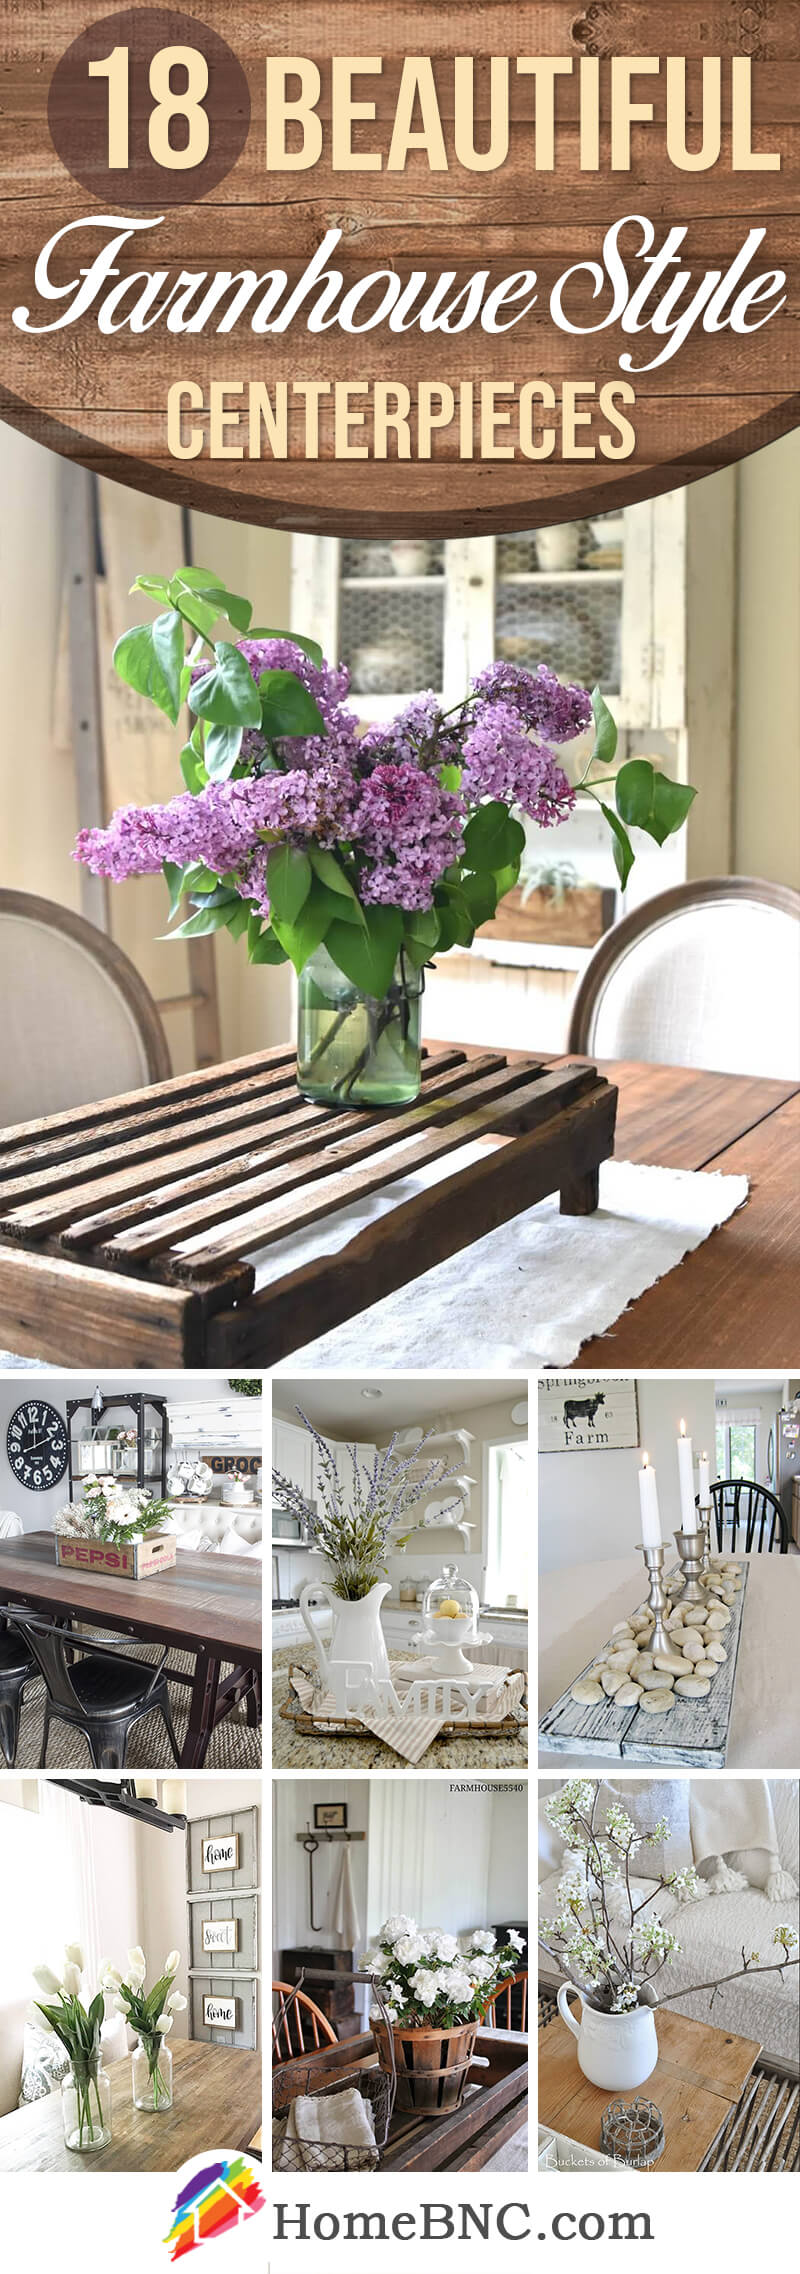 Farmhouse Style Centerpiece Ideas